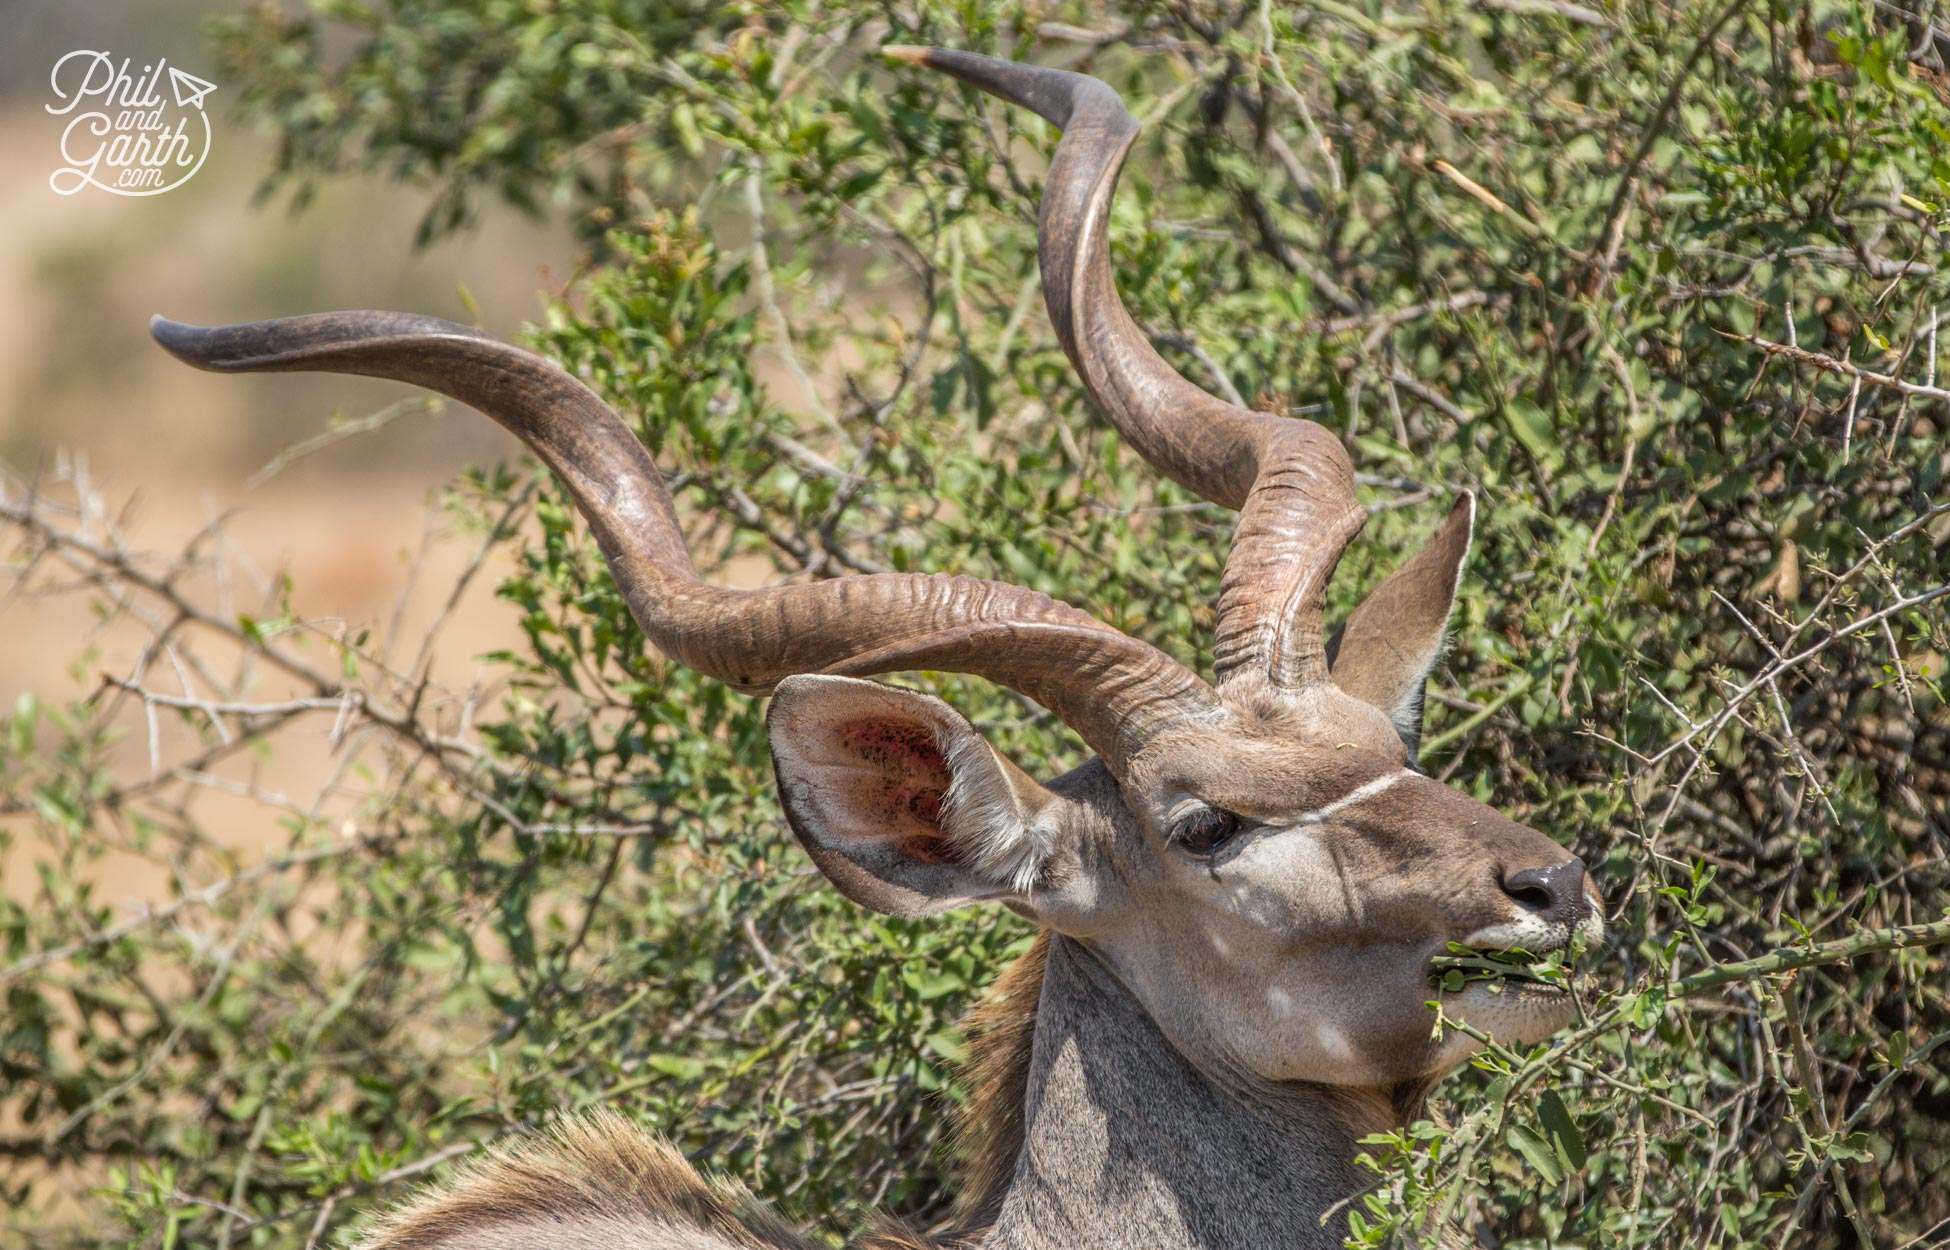 A kudu with their distinctive twisted antlers